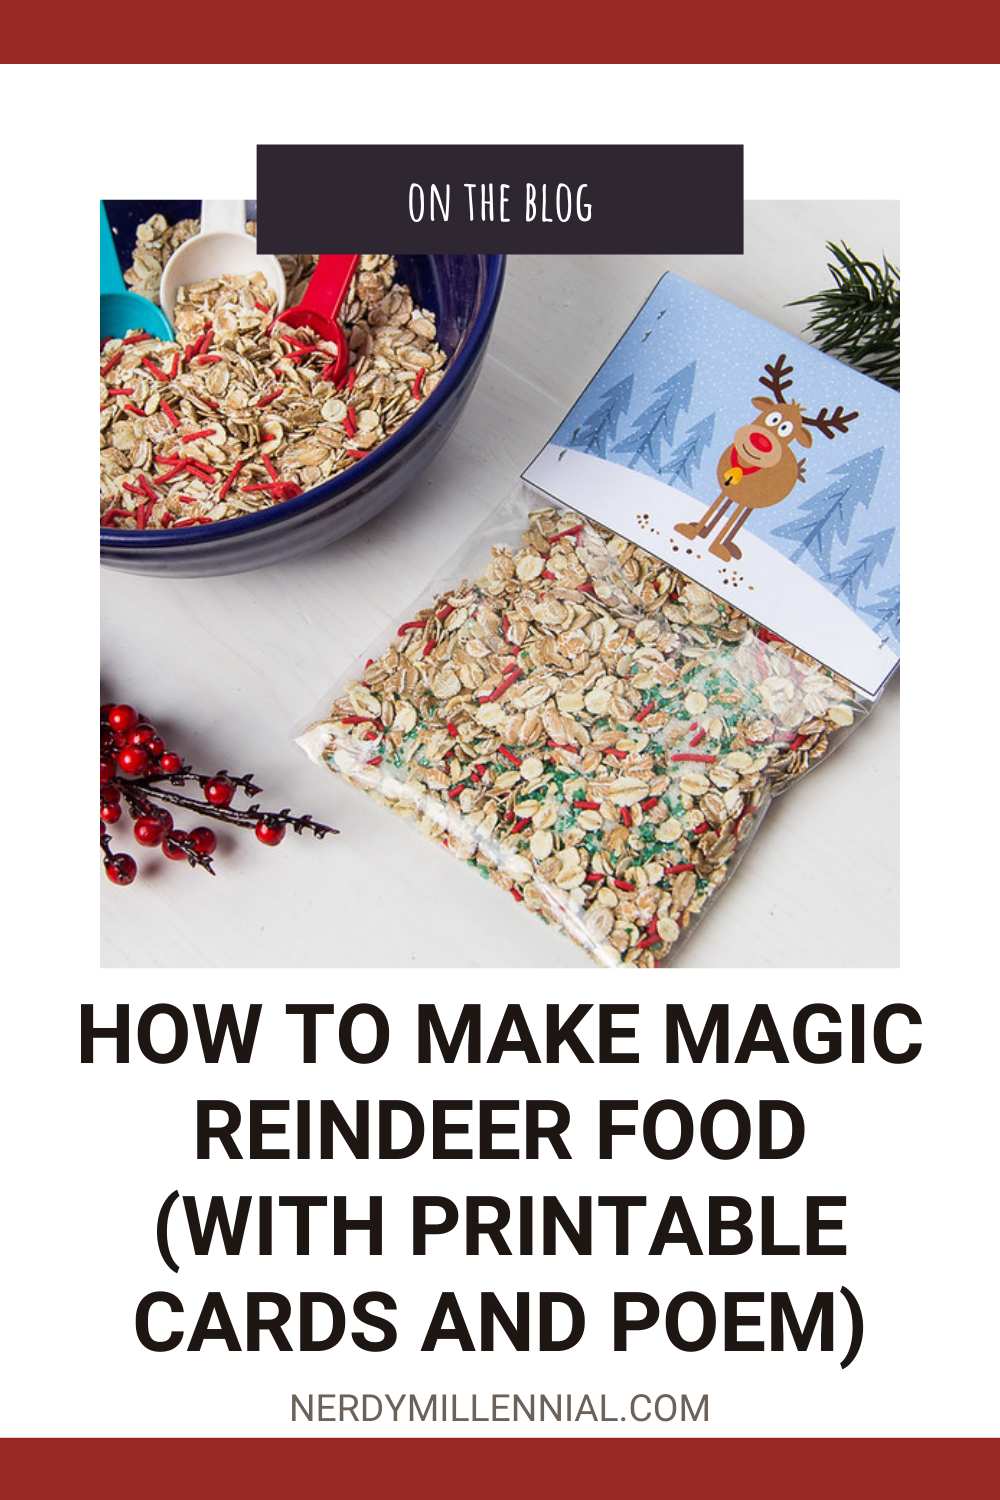 How to Make Magic Reindeer Food (With Printable Cards and Poem)